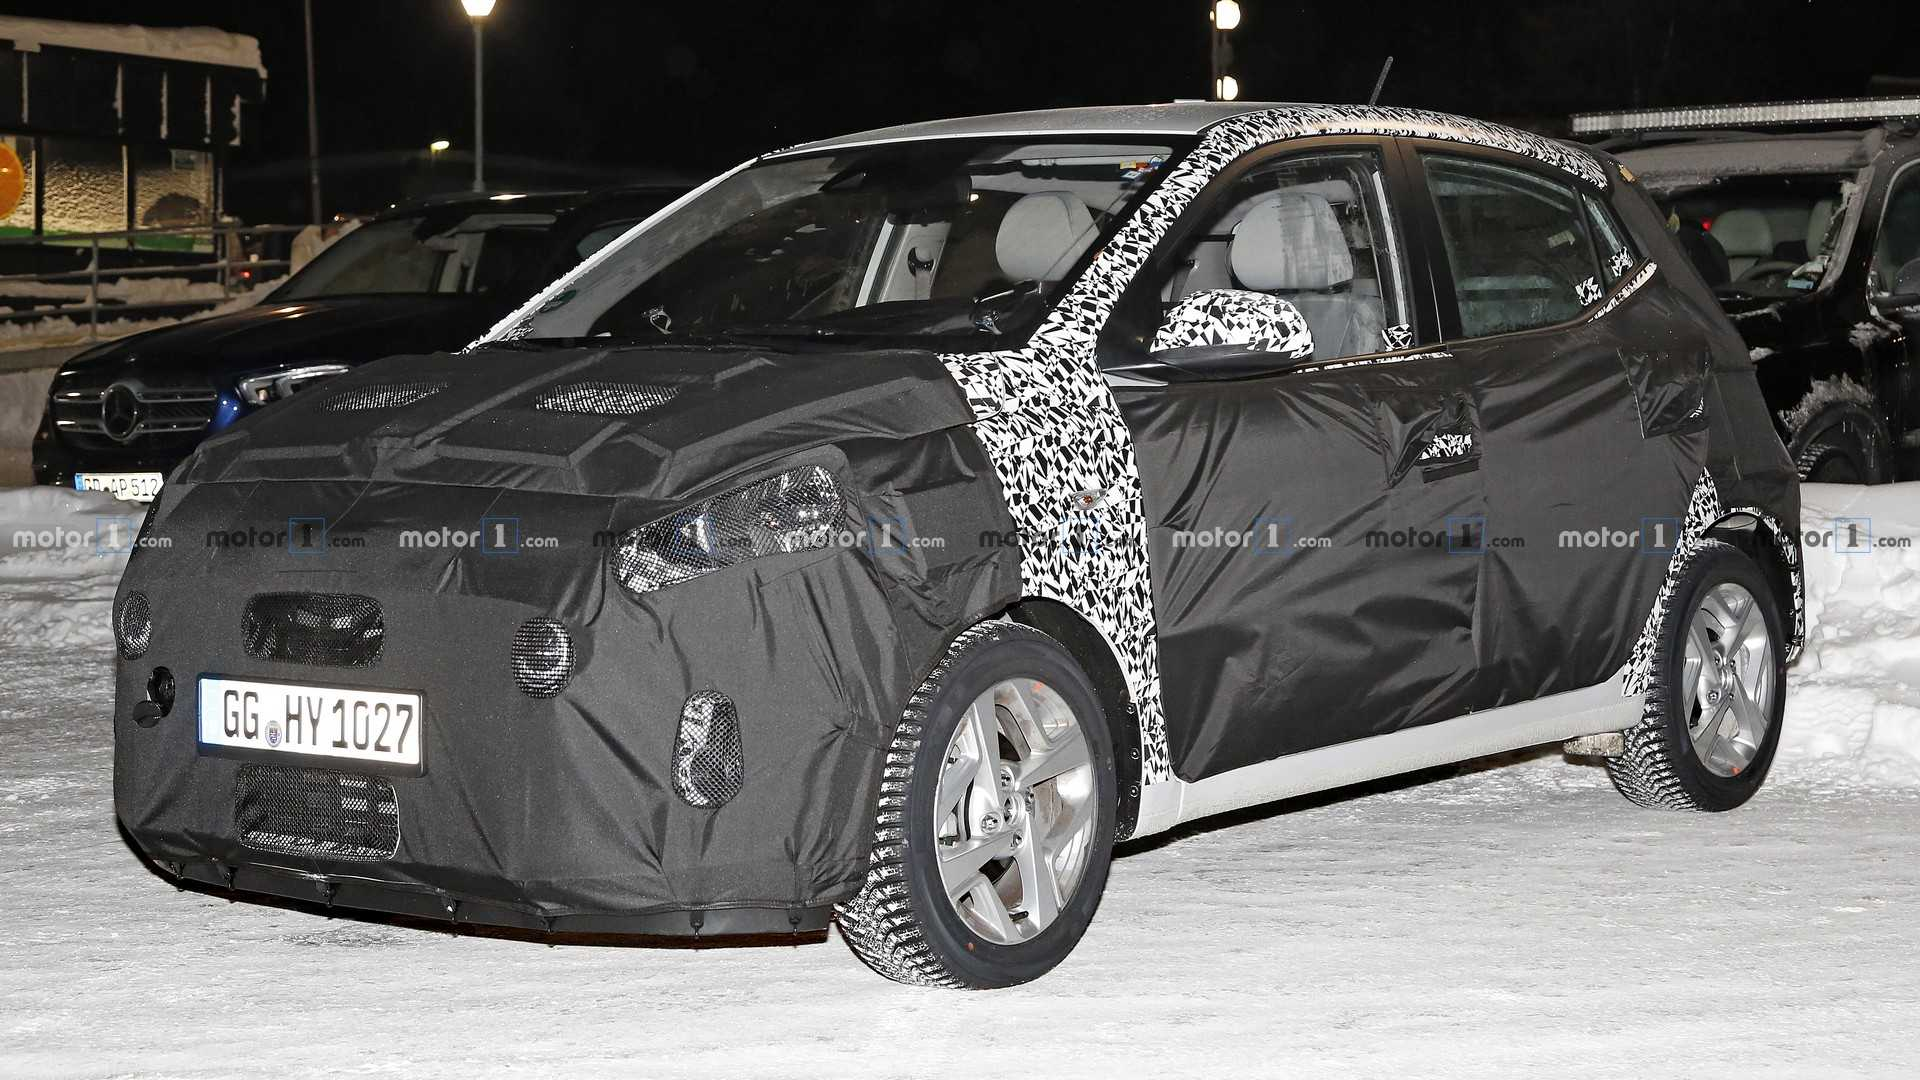 56 New Hyundai I10 2020 Redesign And Review